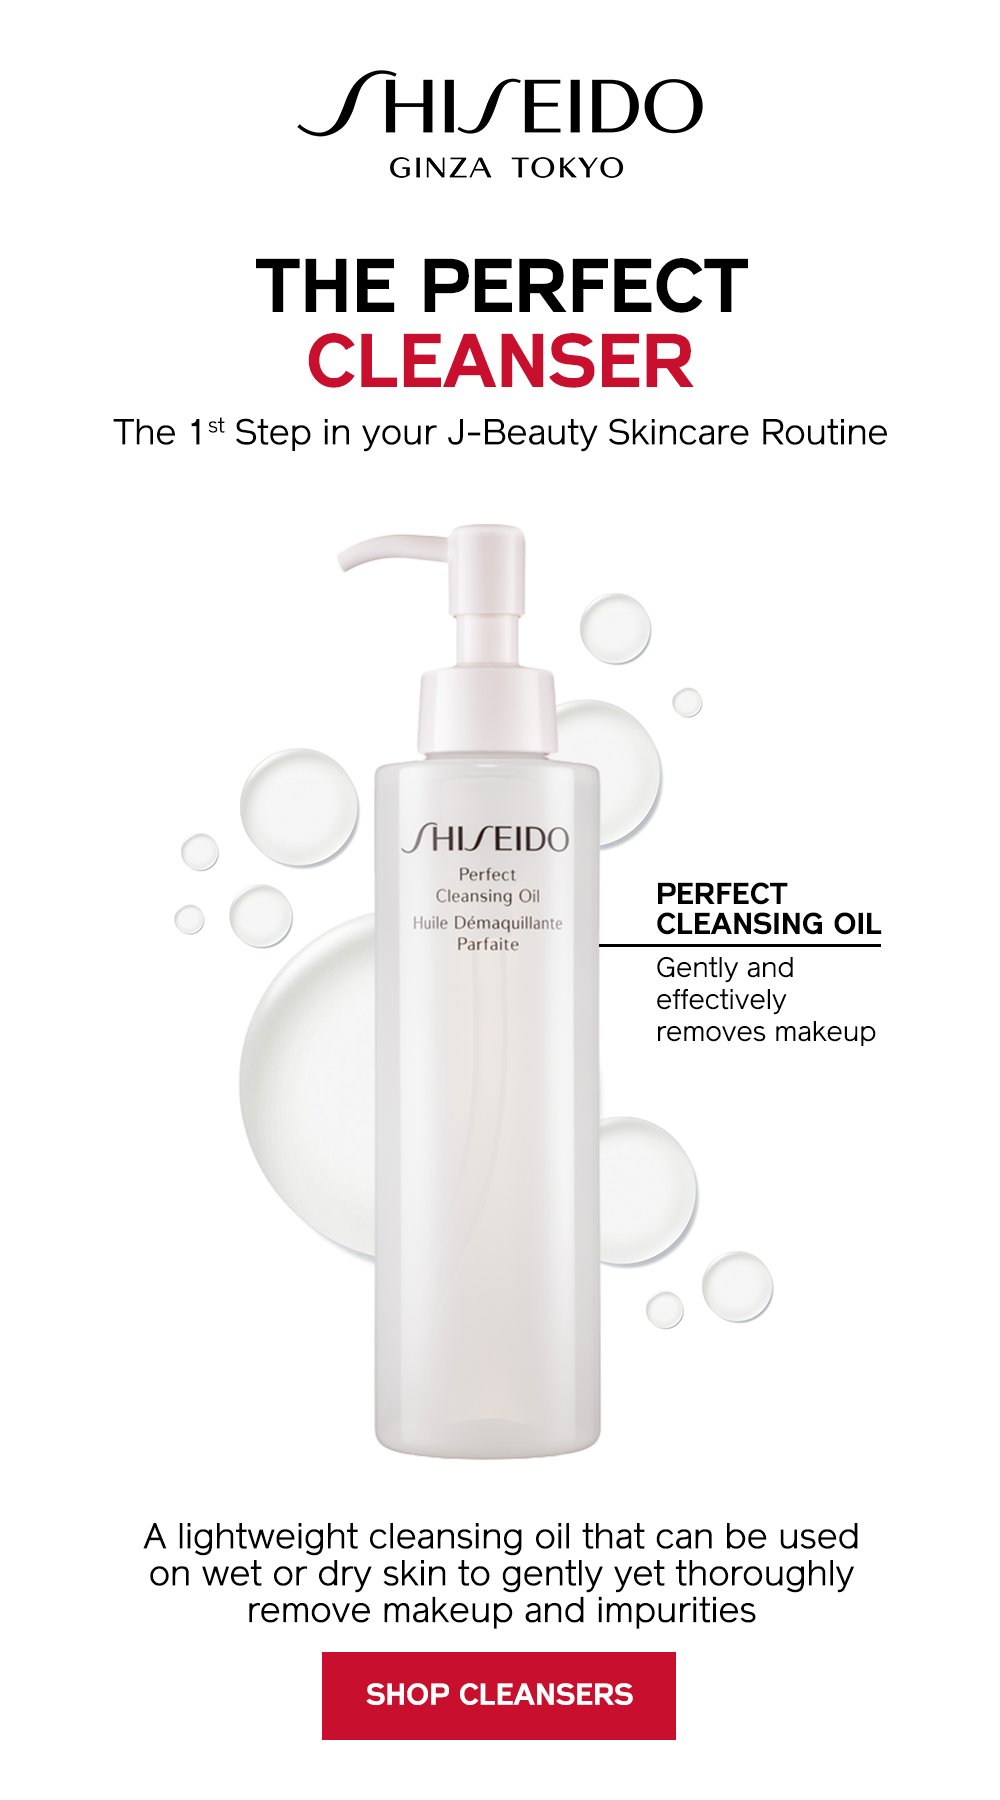 Perfect Cleansing Oil Shiseido Cleansing Oil Dry Skin Makeup Beauty Skin Care